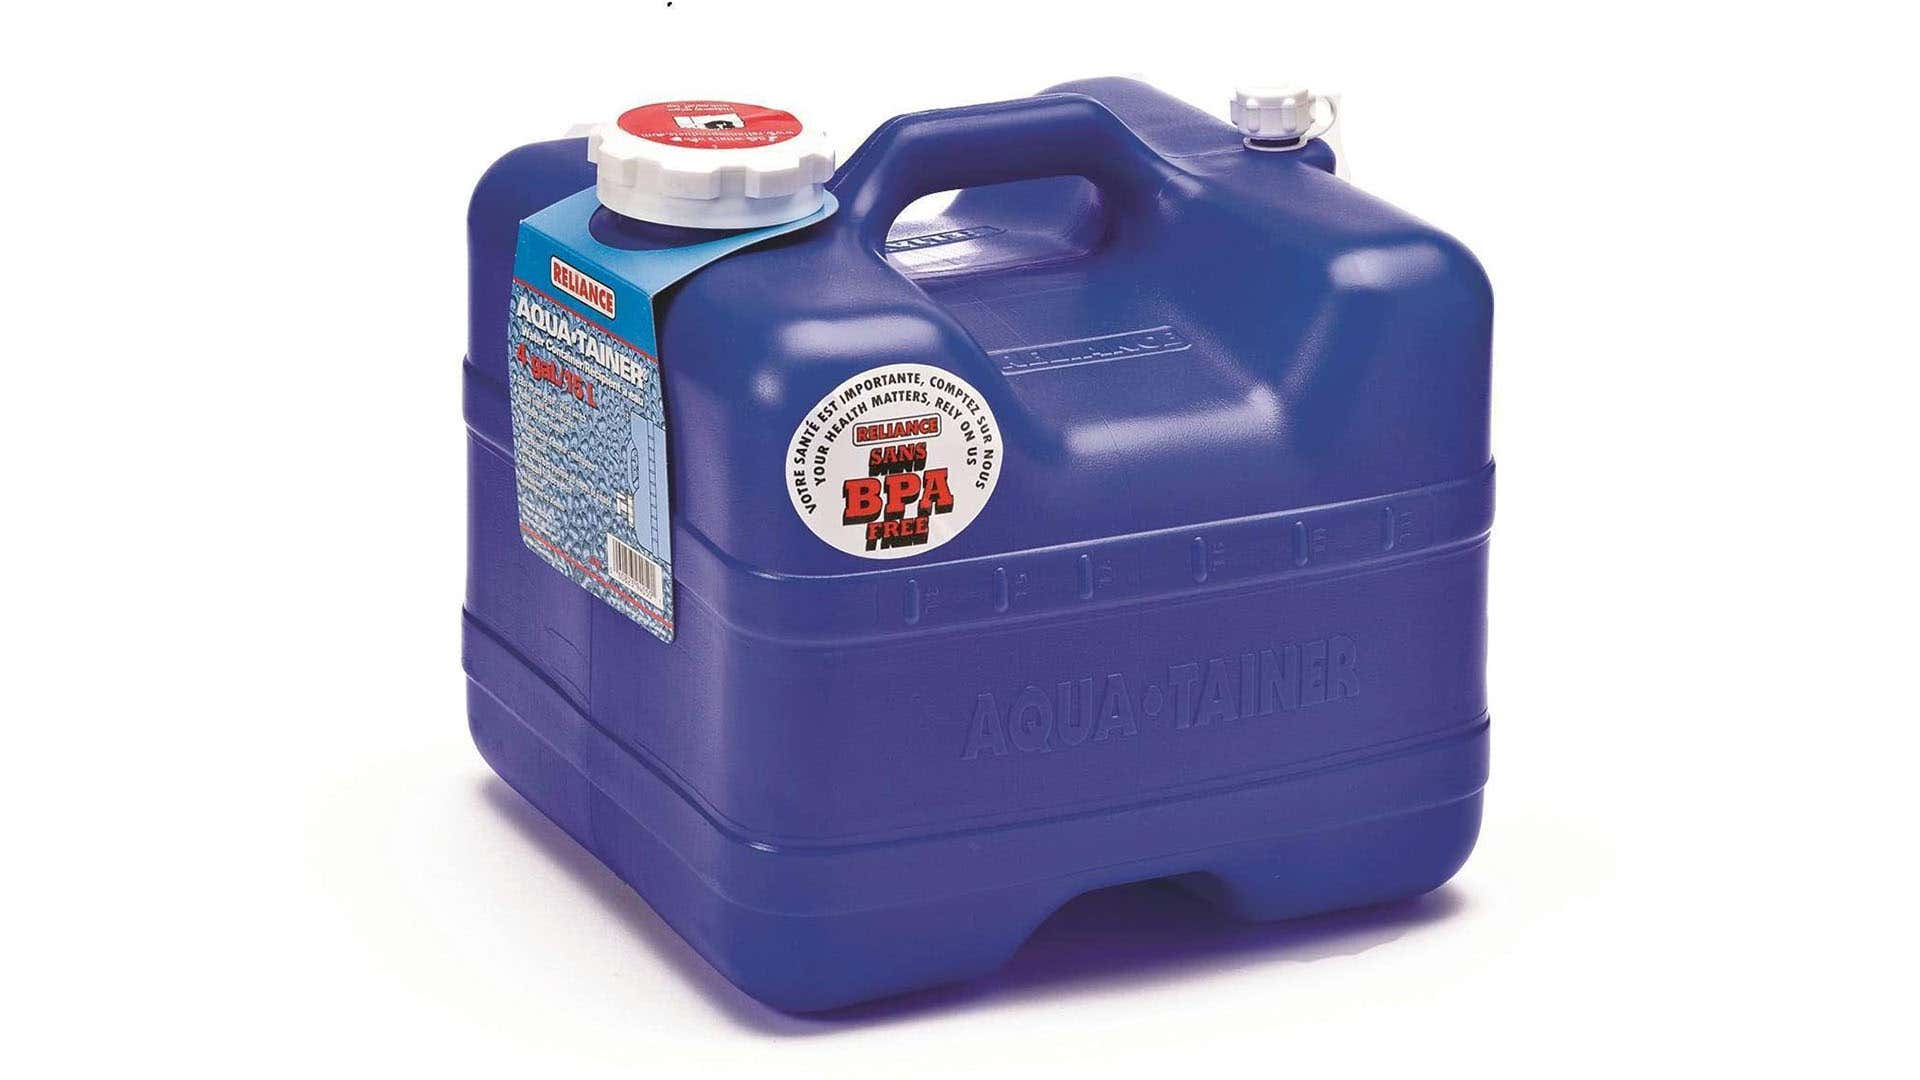 During camping, water can be used for drinking, making food, brushing teeth, and cleaning.